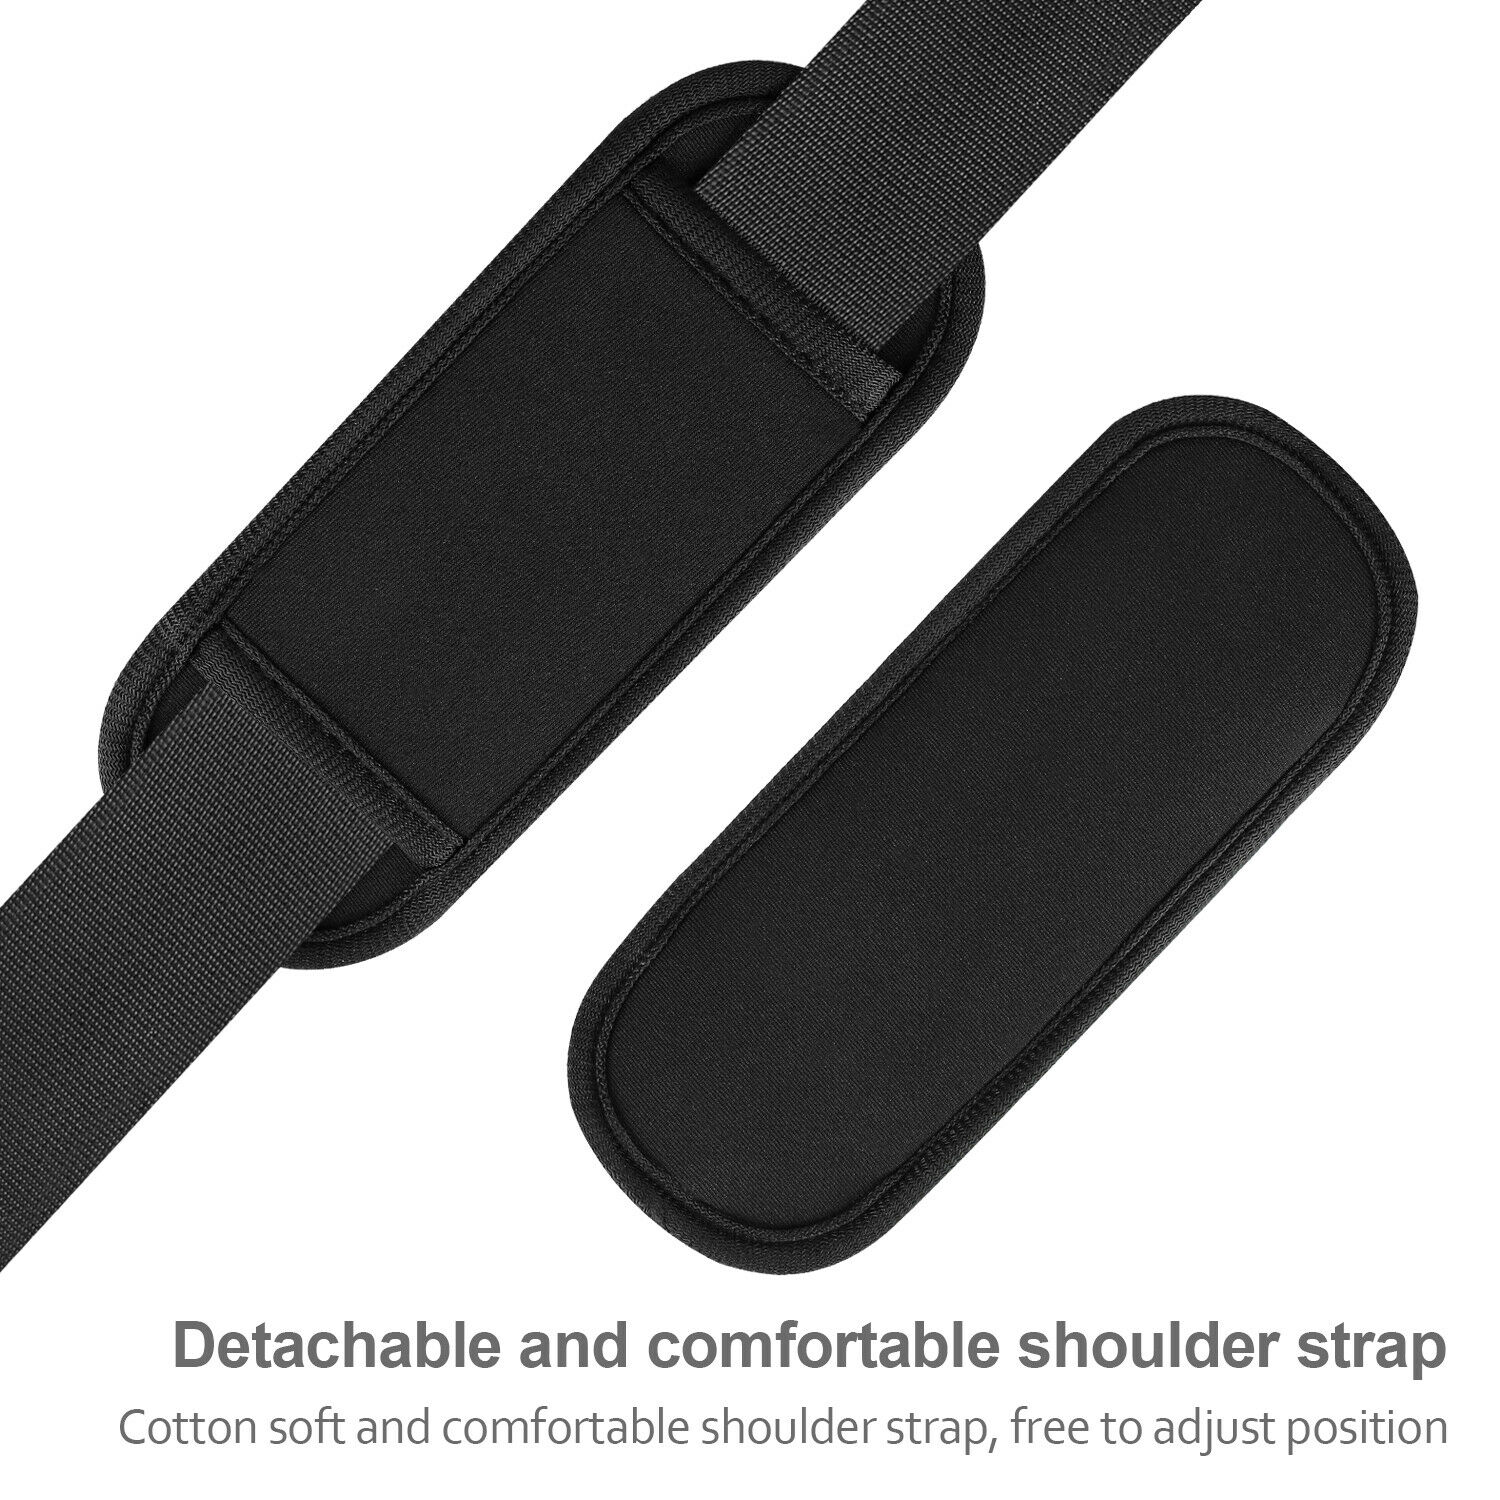 155cm Replacement Padded Shoulder Strap Extra Long Adjustable